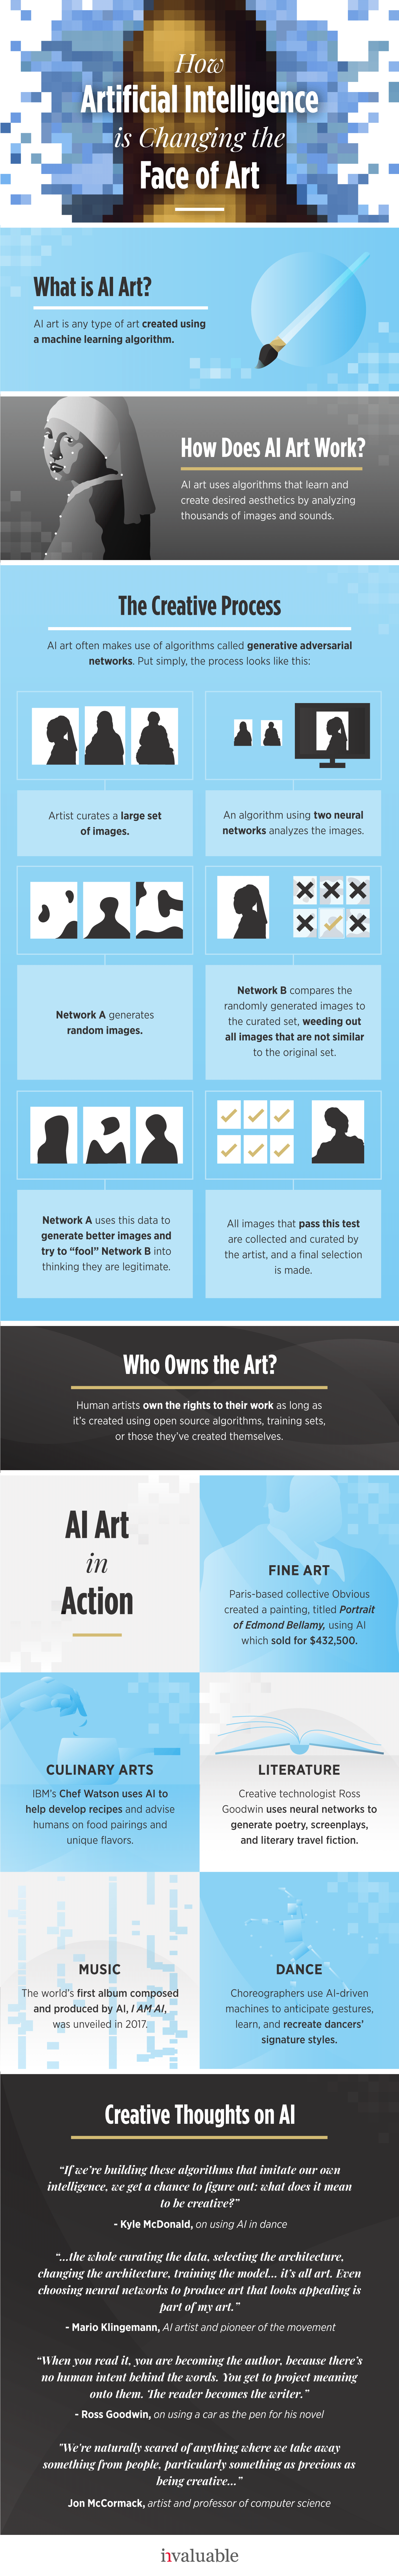 ai-in-art-infographic